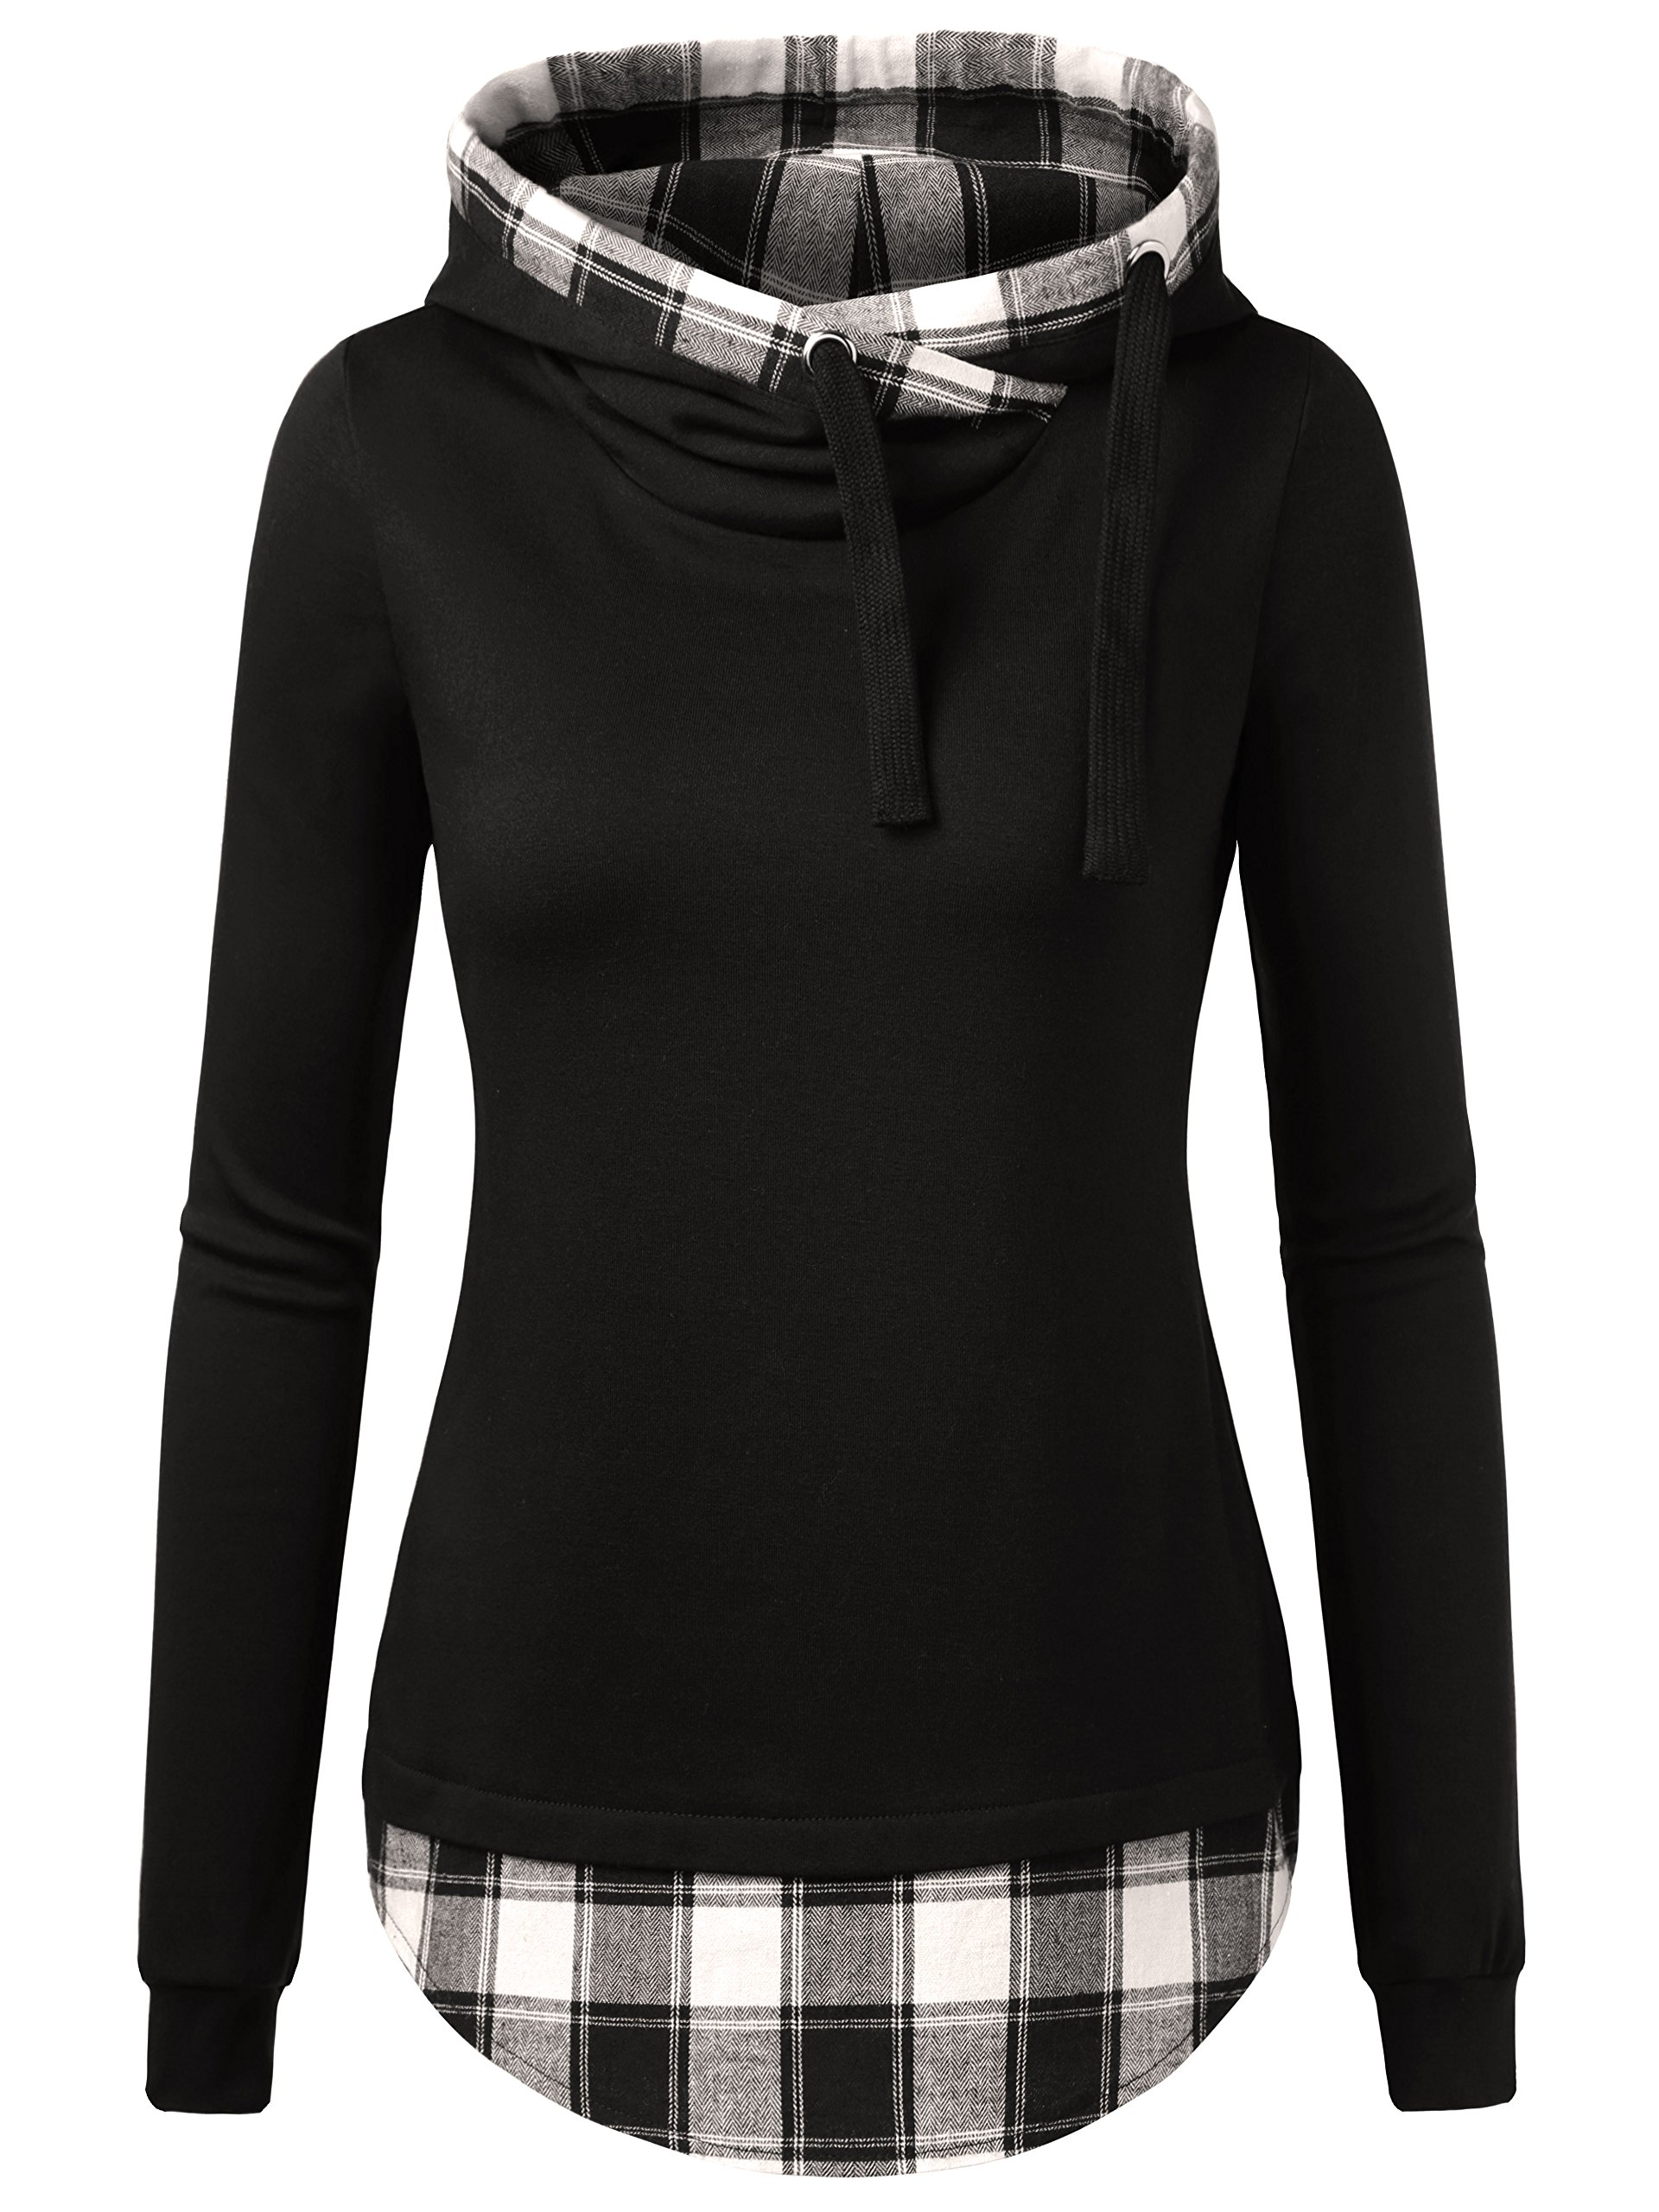 DJT Women's Funnel Neck Check Contrast Pullover Hoodie Top XX-Large Black #2 by DJT